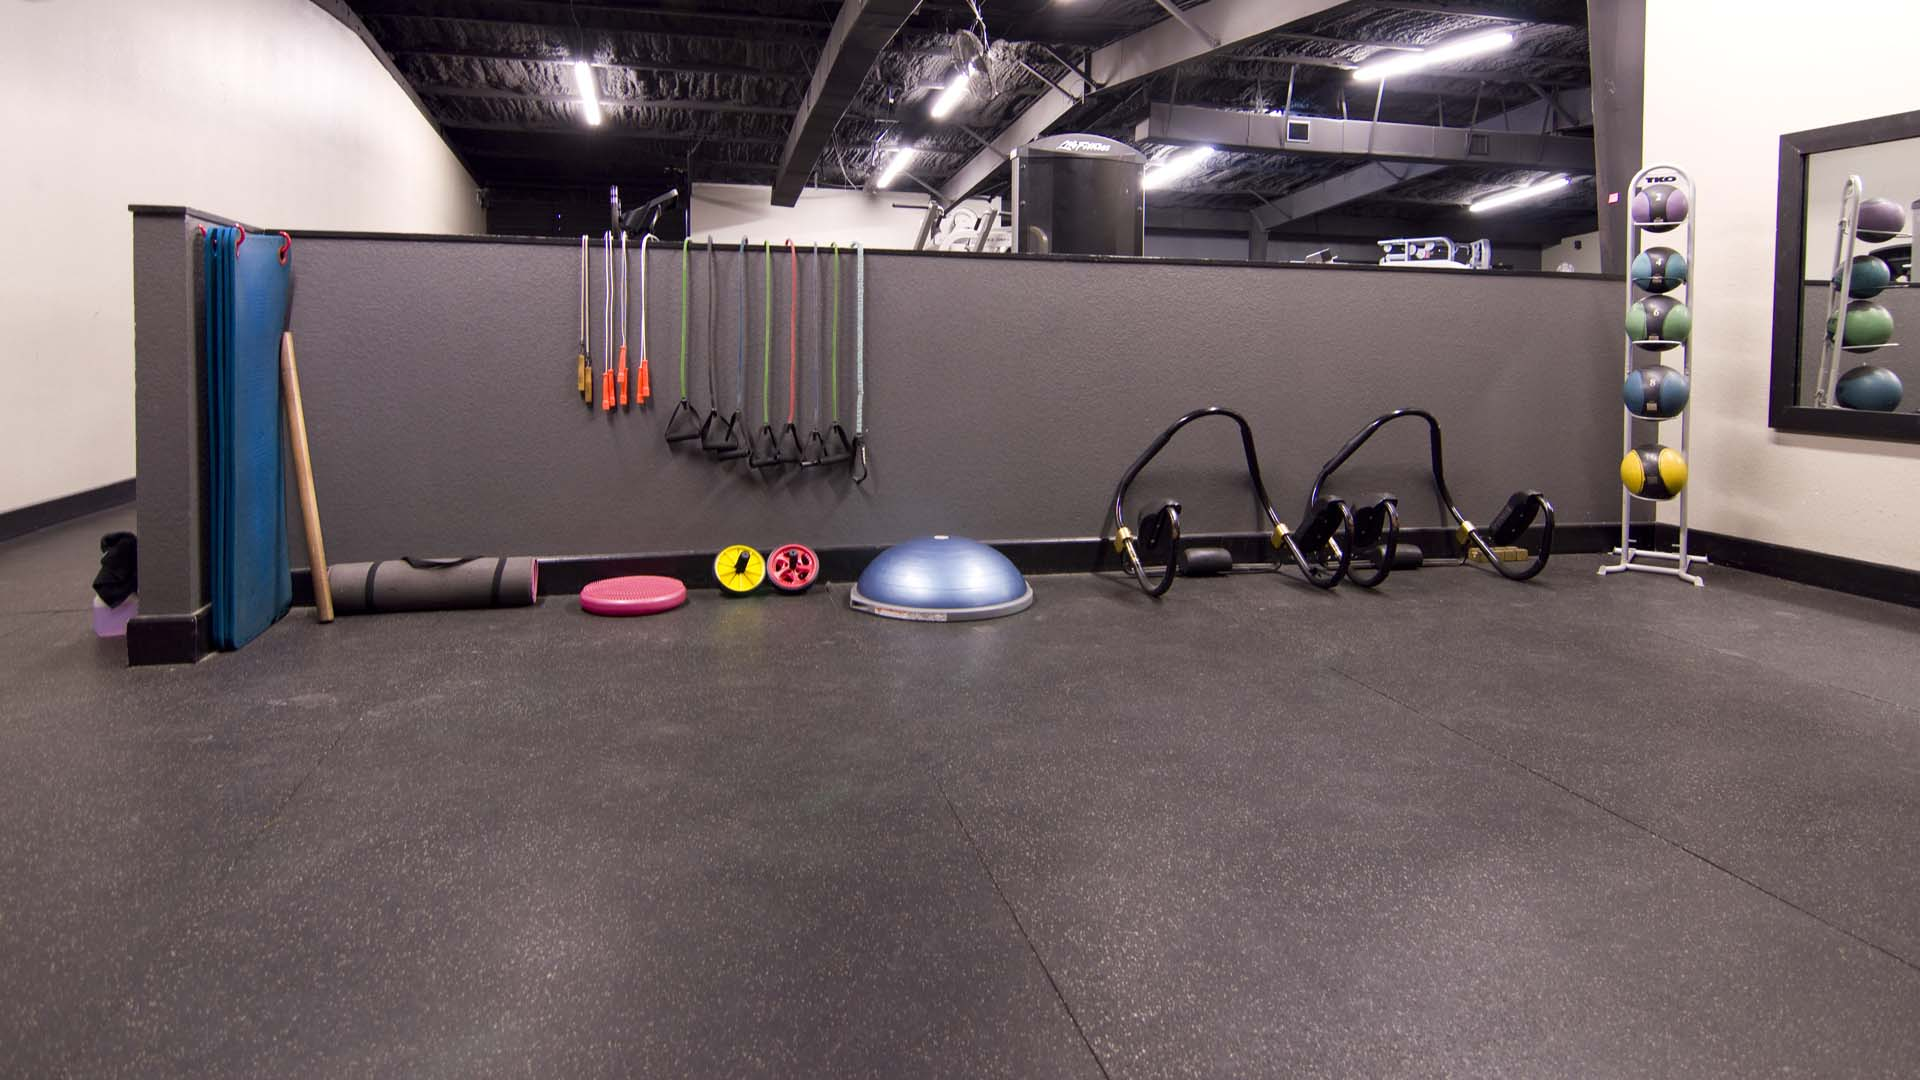 Fitness bands, medicine balls and a variety of other equipment in the core area of the gym.